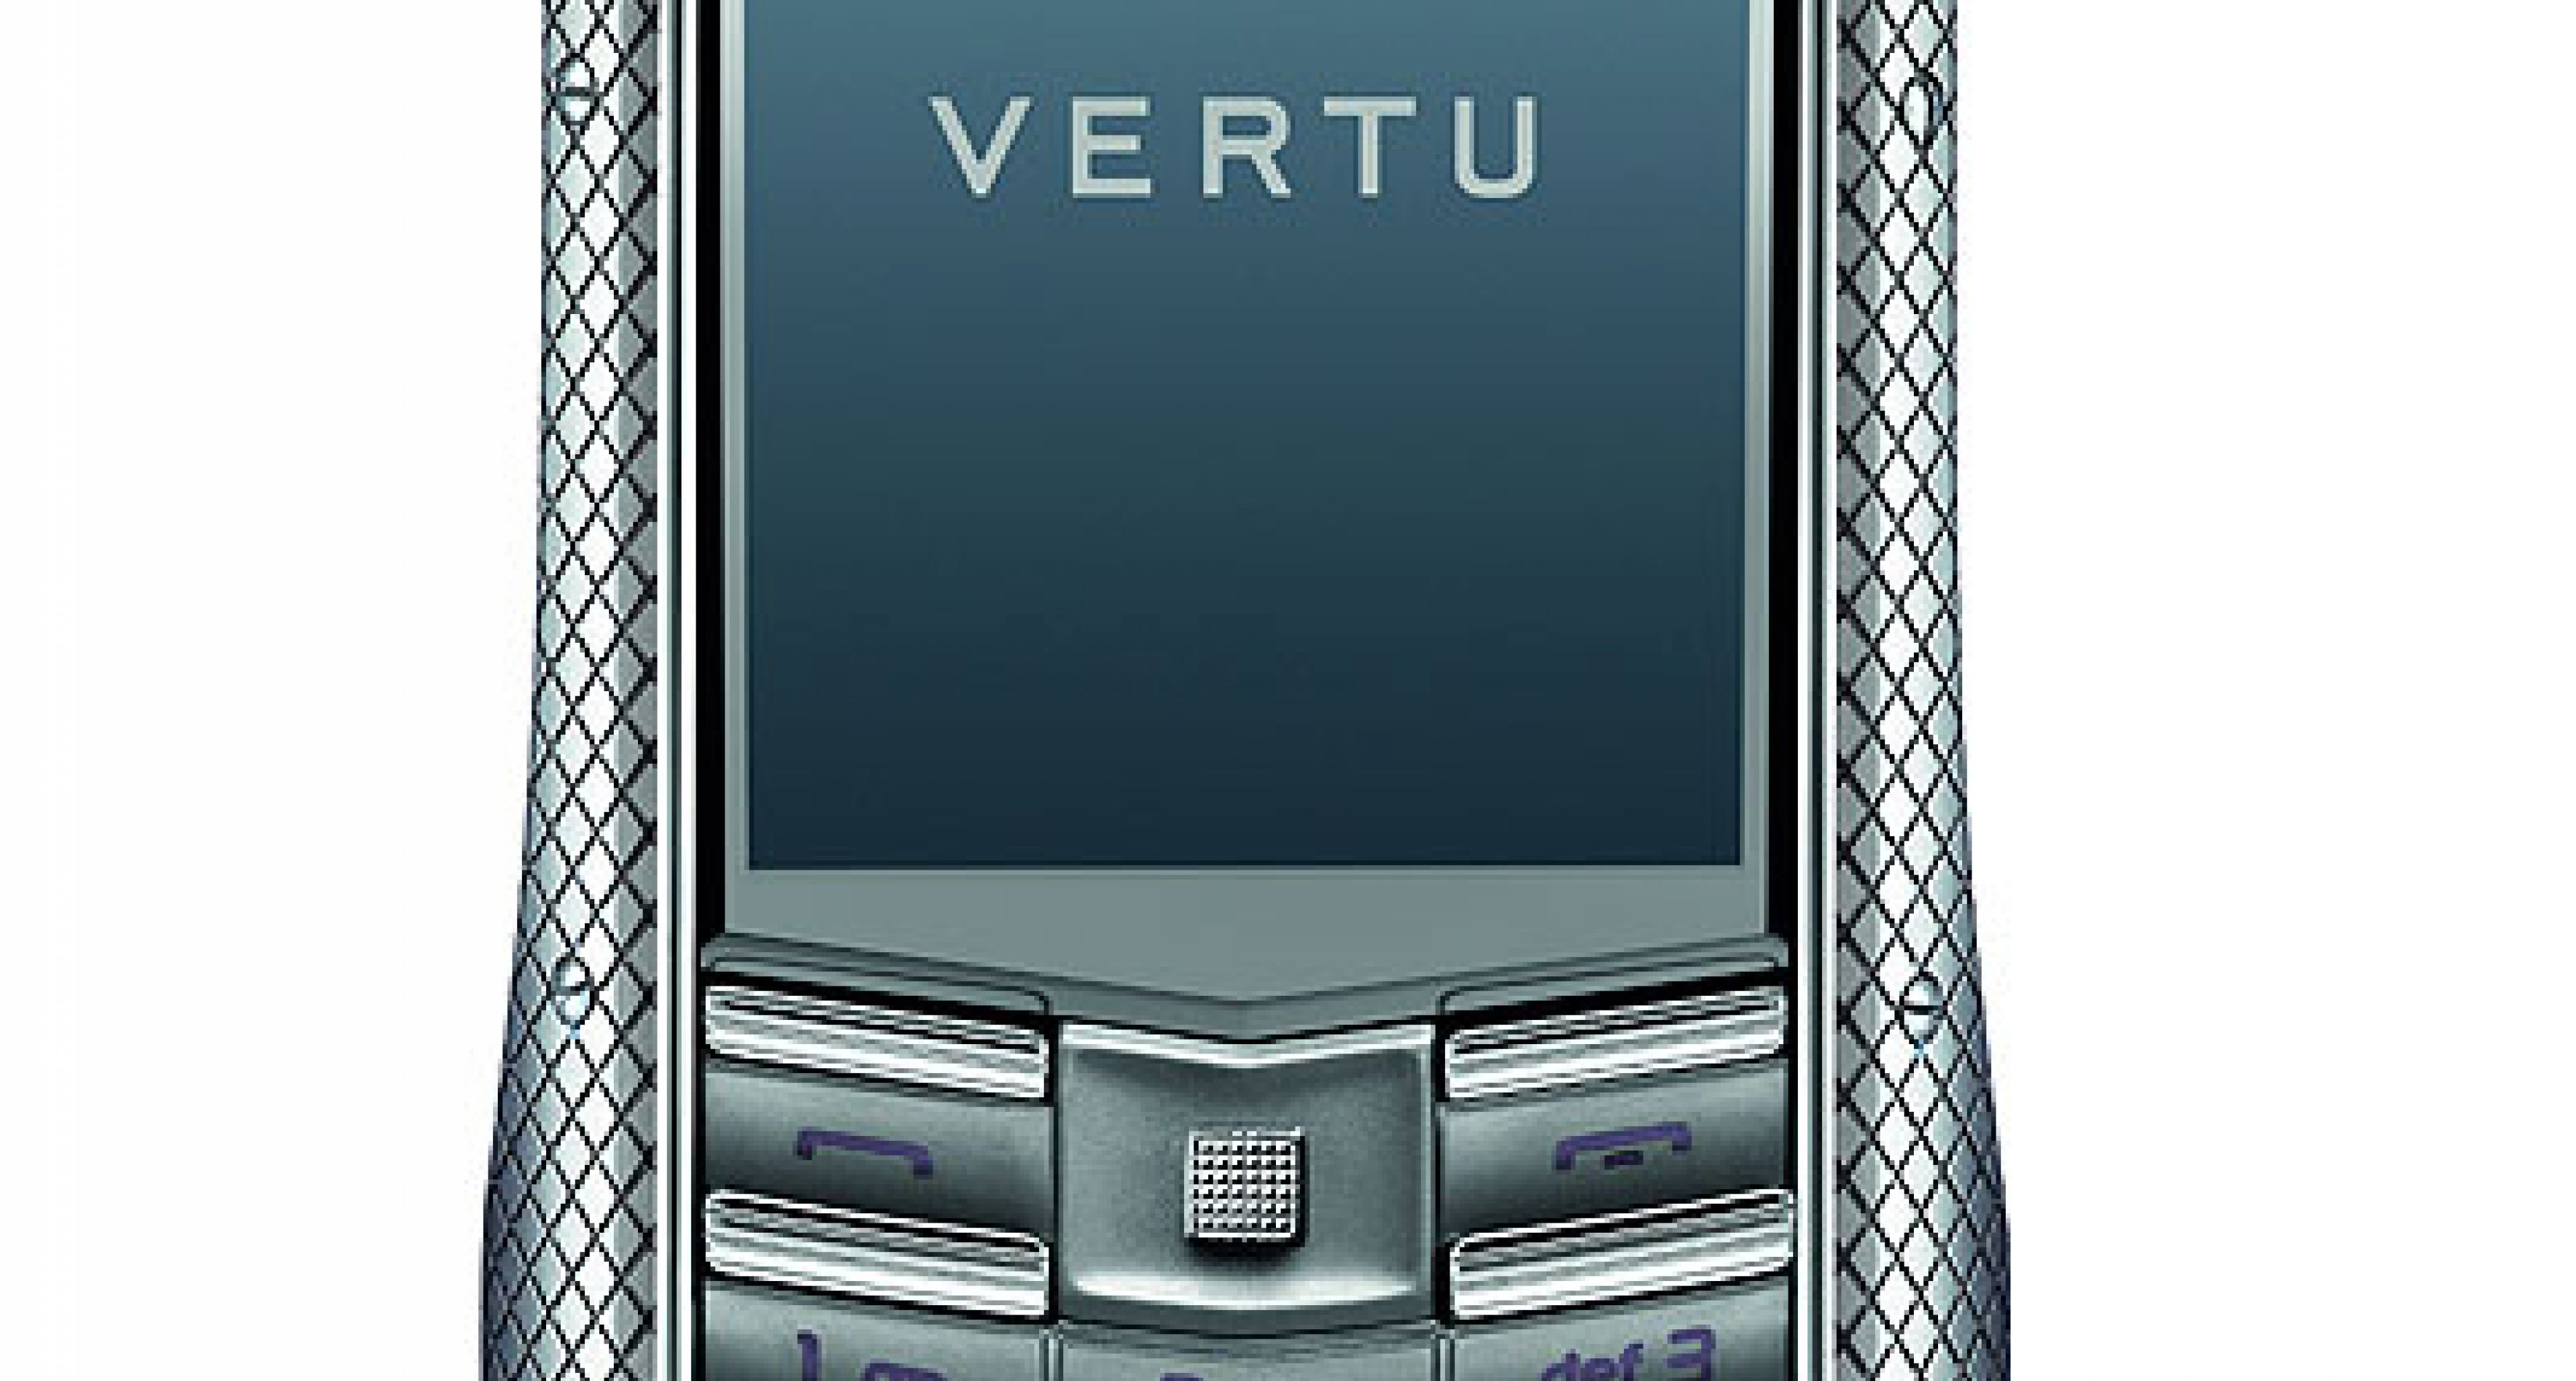 Vertu Ascent TI: Knurled and Checked